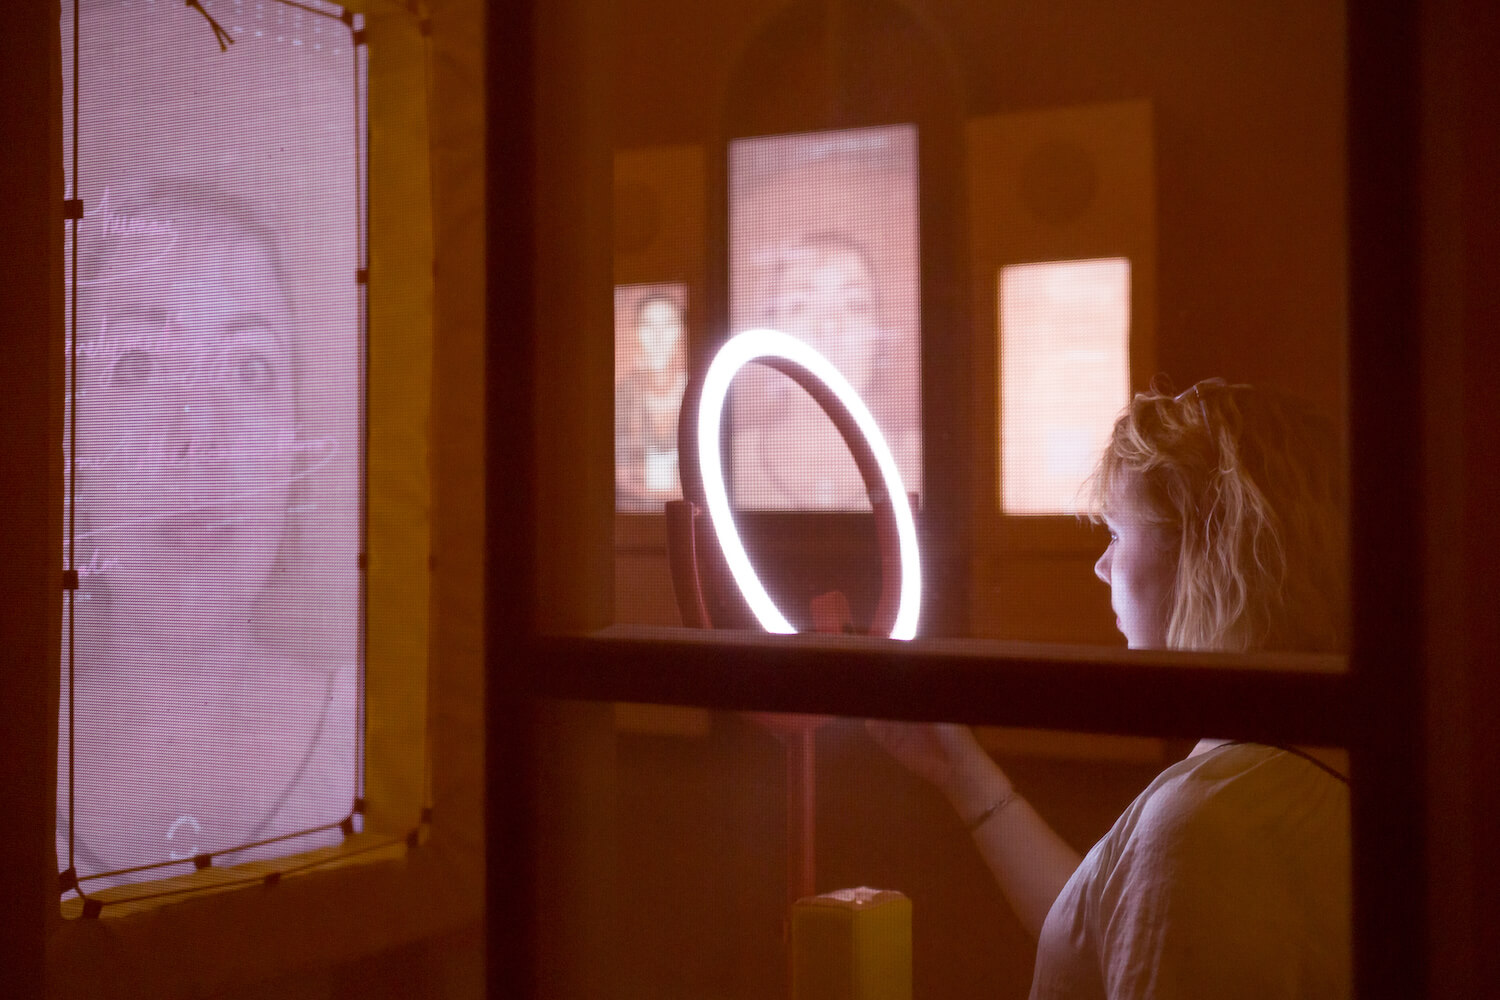 Biometric Mirror by Lucy McRae and Dr Niels Wouters. Part of the inaugural exhibition at Nxt Museum, _Shifting Proximities_, opening 29 August. © Peter Tijhuis(1)